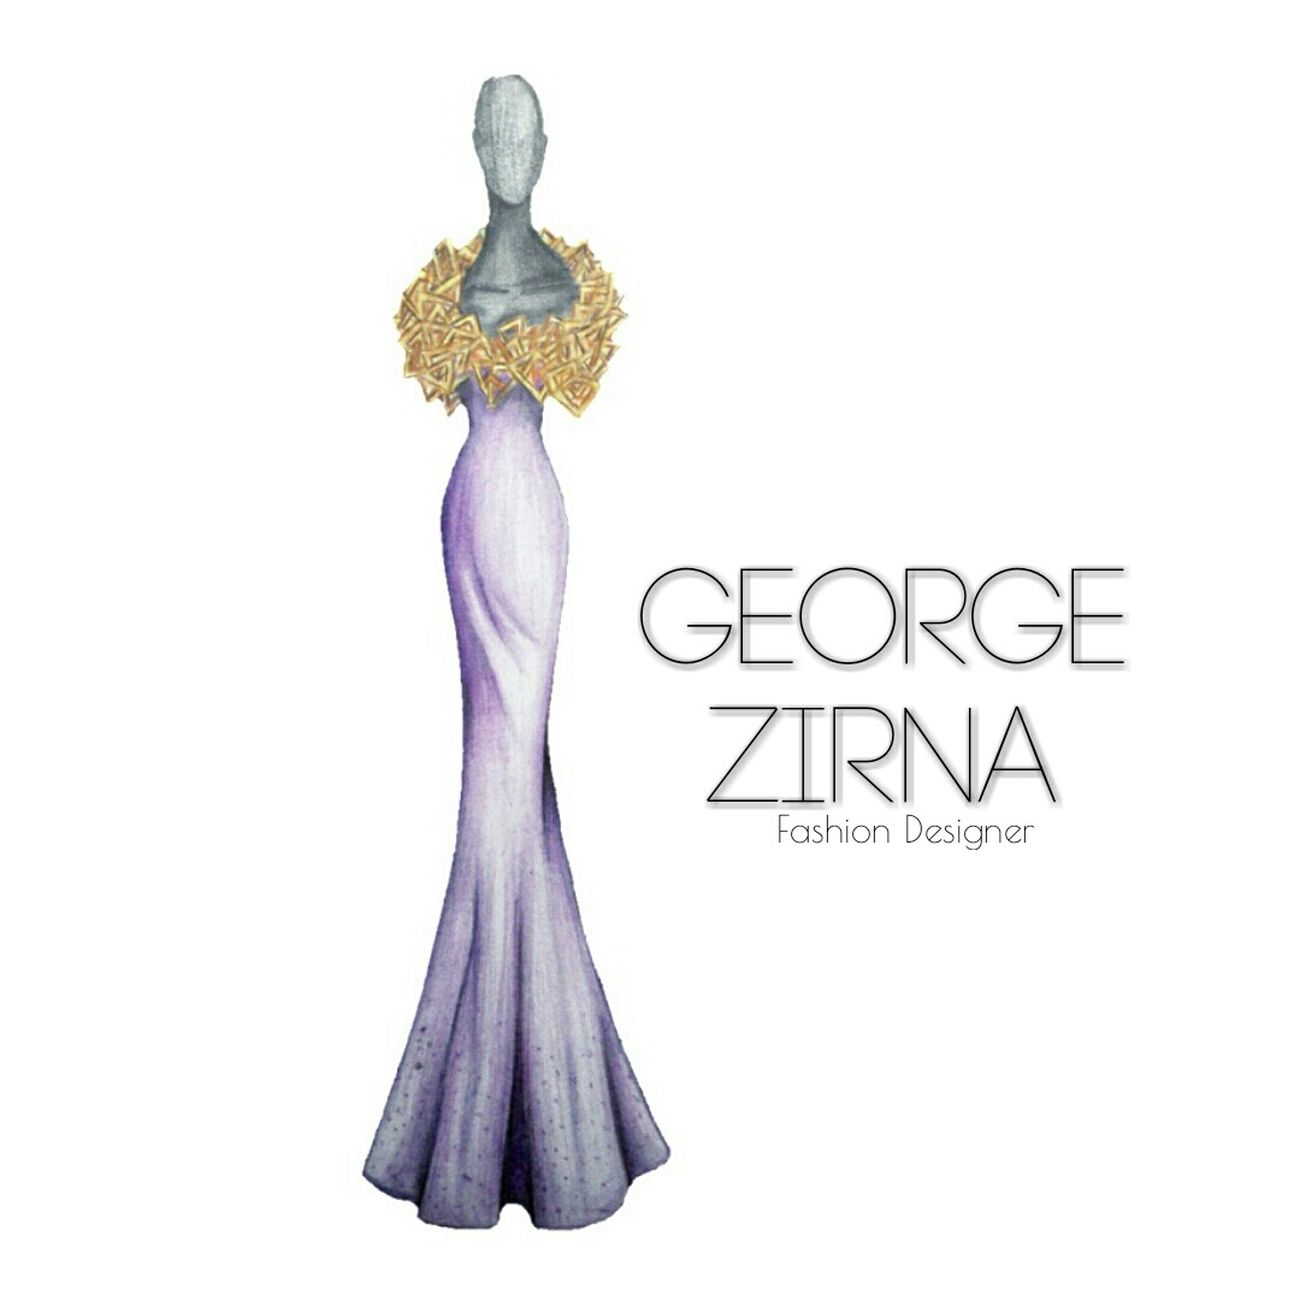 Soon George Zirna Ladygaga Taking Photos Gay Fashion Design Fashionblogger Fashionphotographer